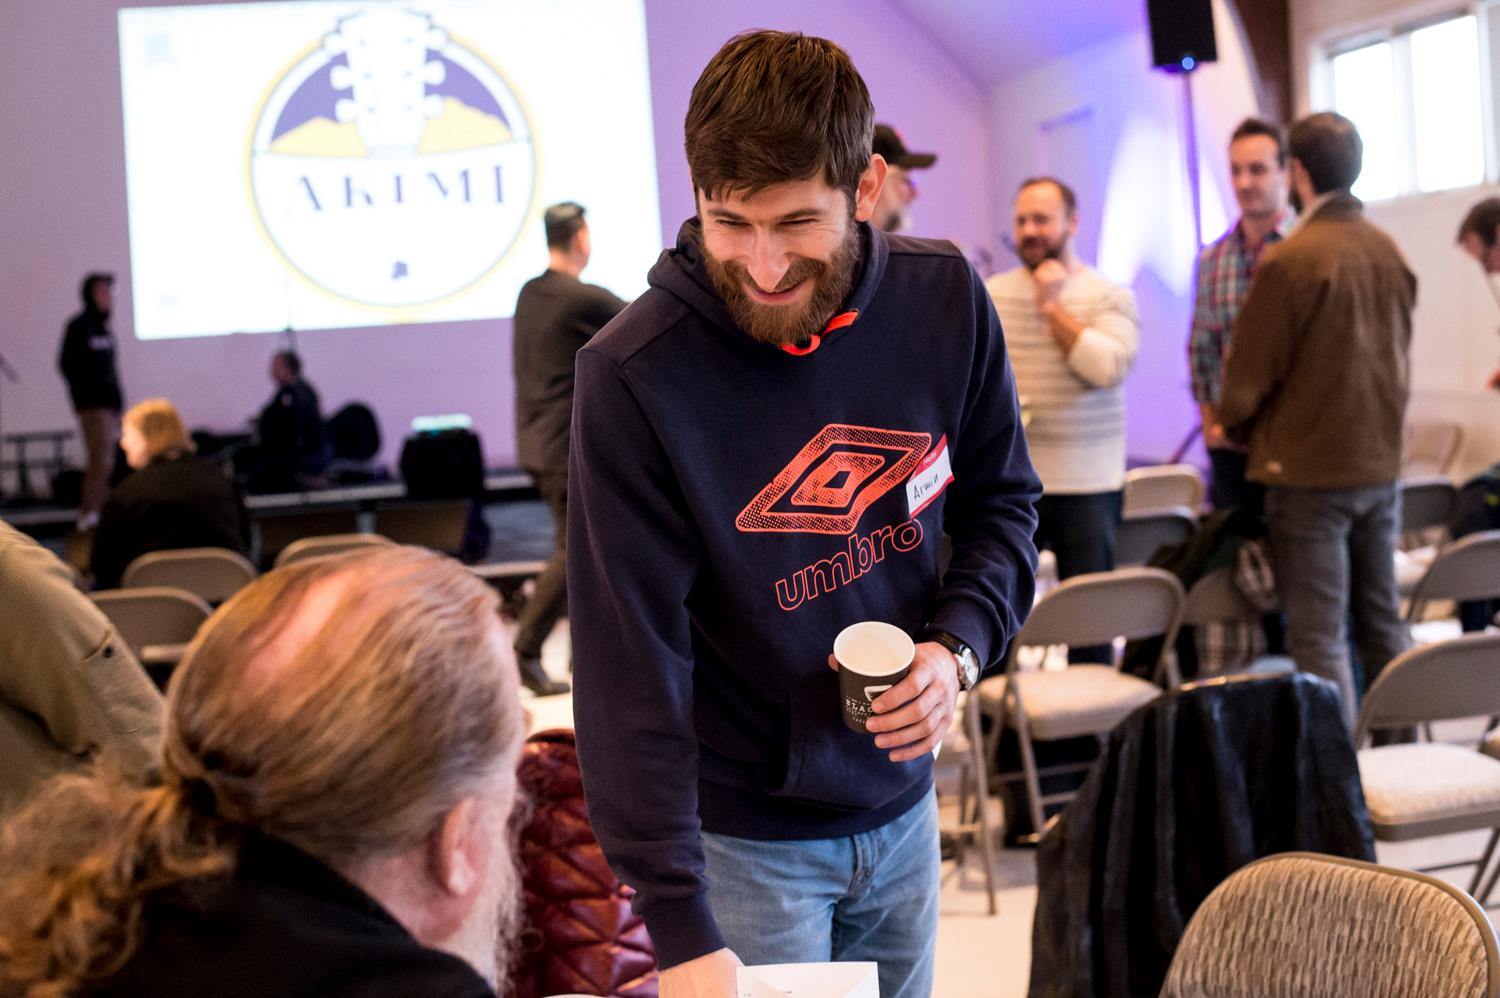 AKIMI encourages networking and development opportunities to help Alaskan musicians build professional careers